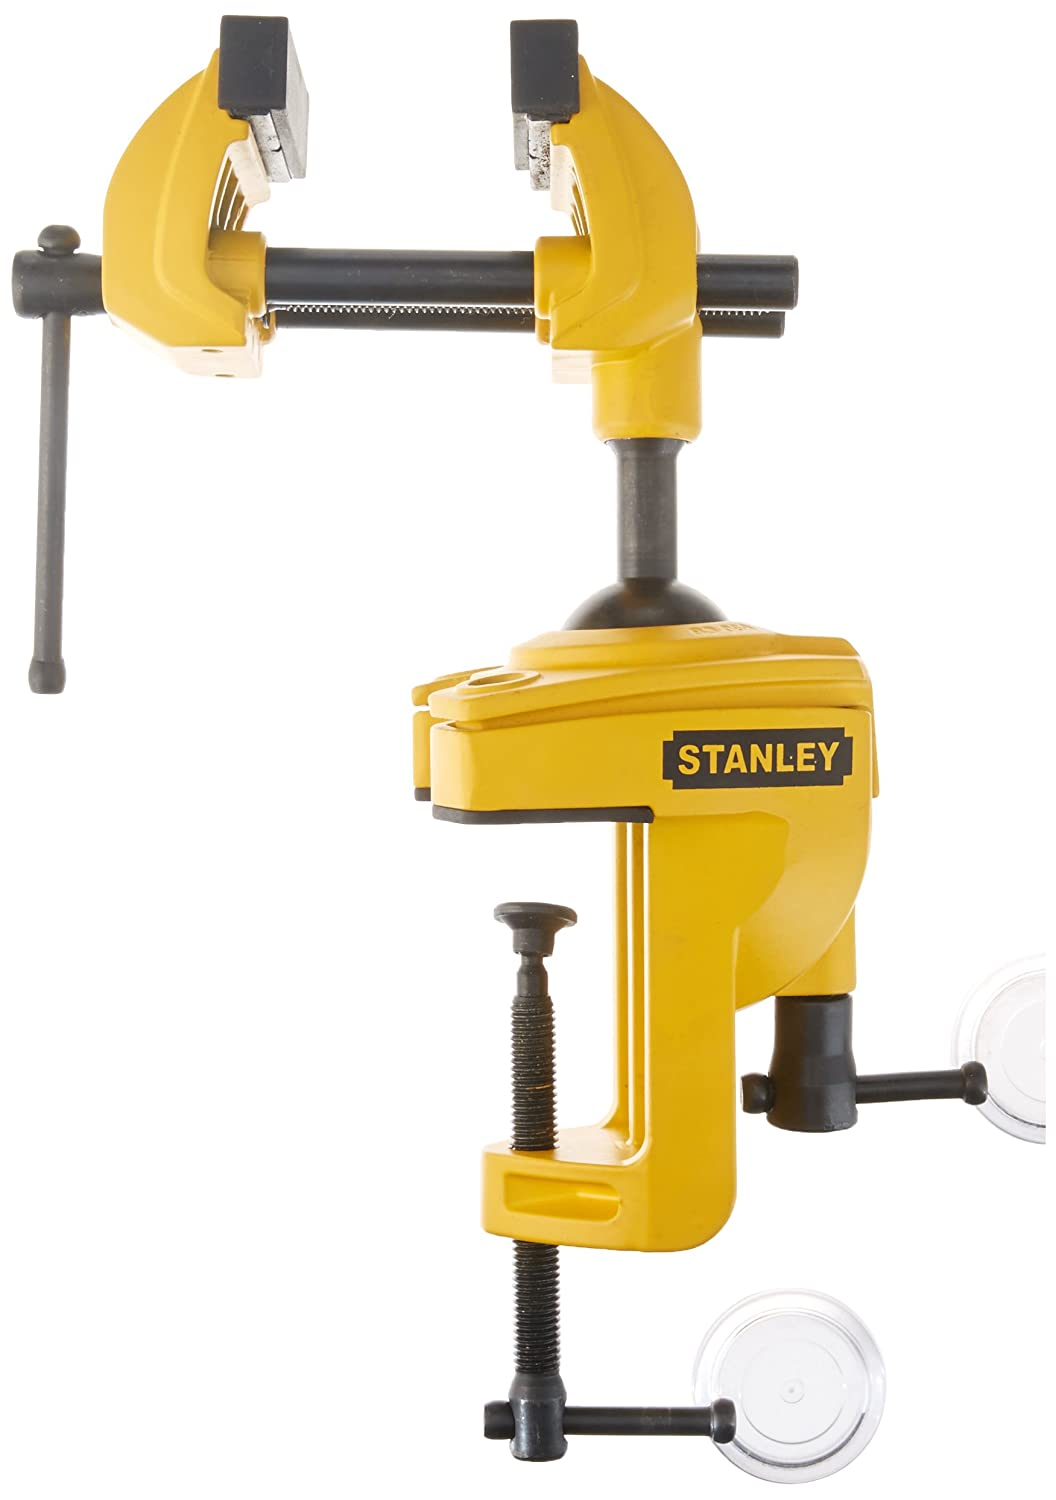 STANLEY 1-83-069 - Tornillo de banco multiangulos: Amazon.es ...